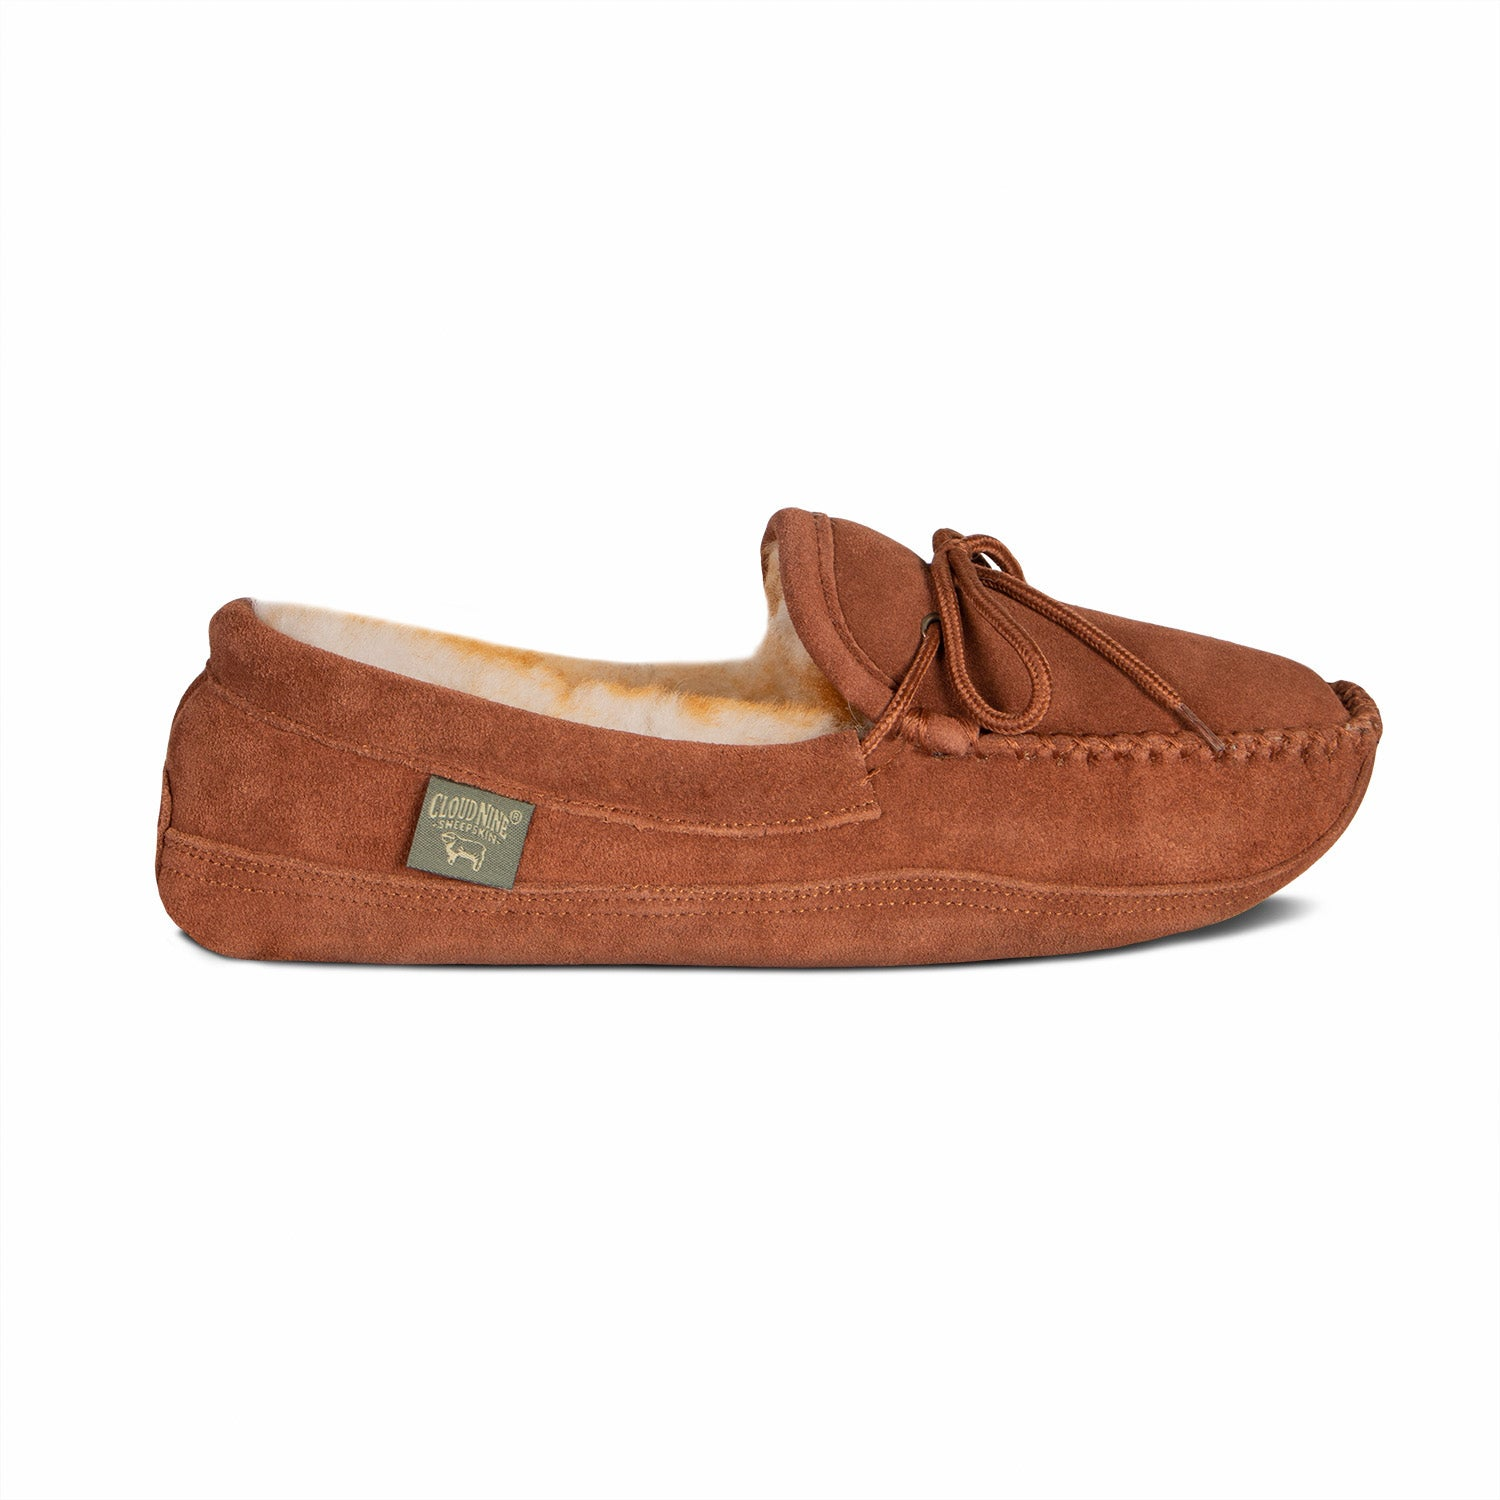 MEN'S SOFT SOLE MOCCASIN